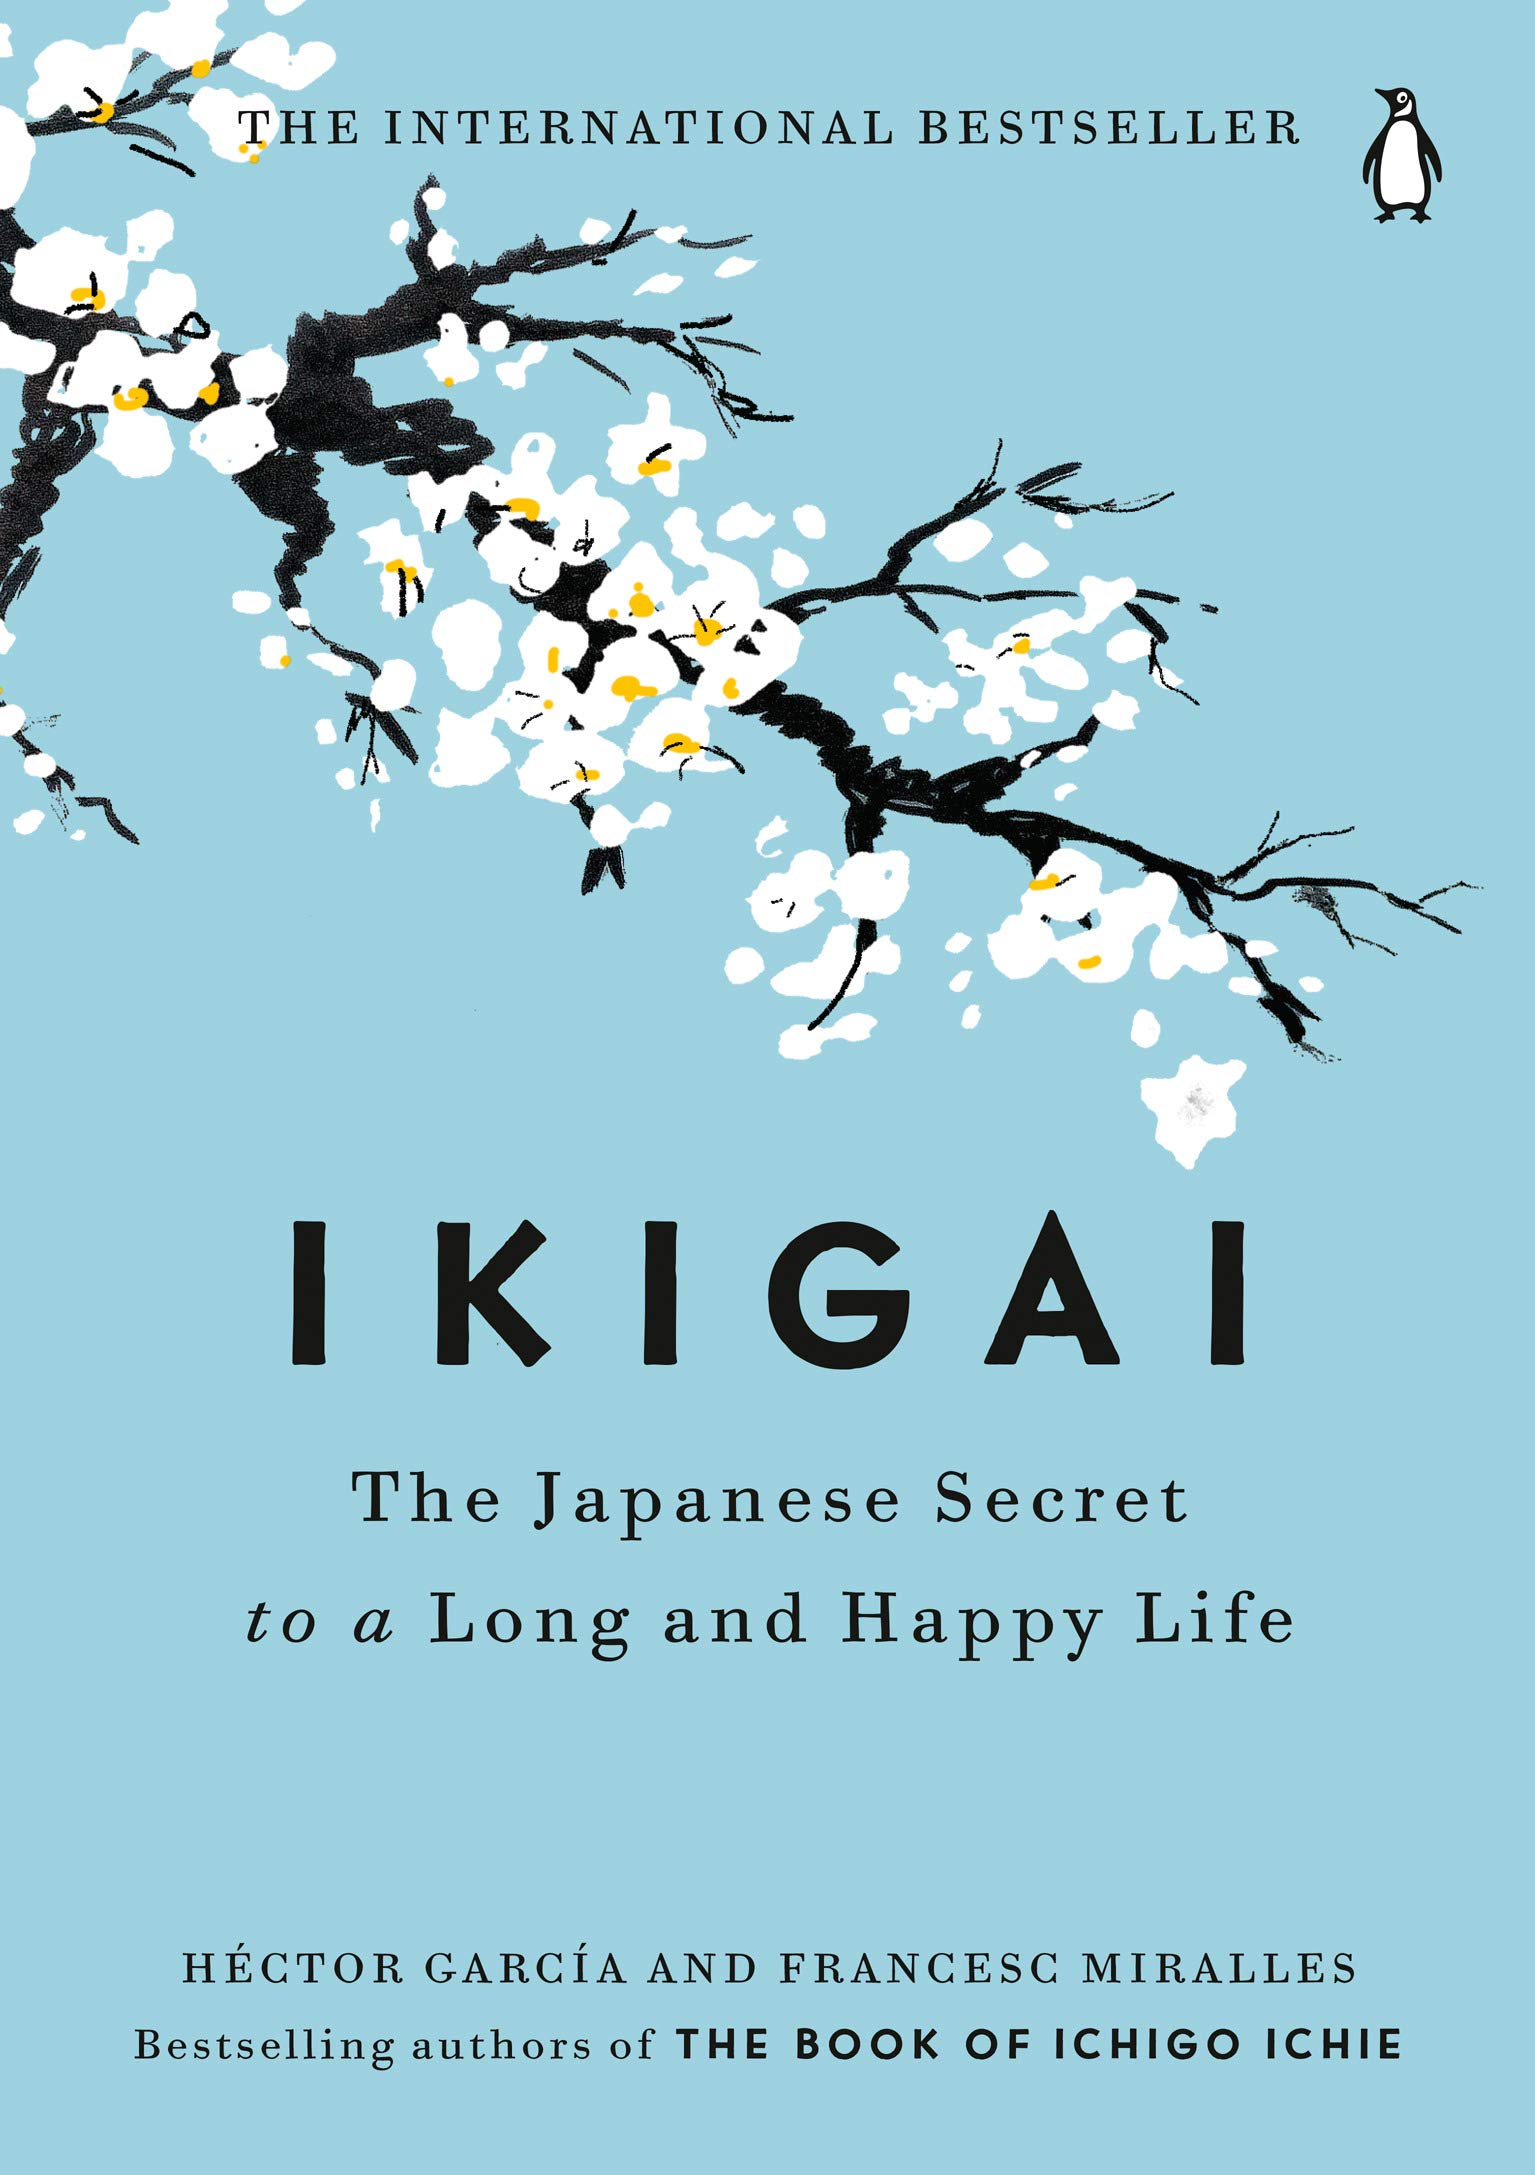 Ikigai: The Japanese secret to a long and happy life.